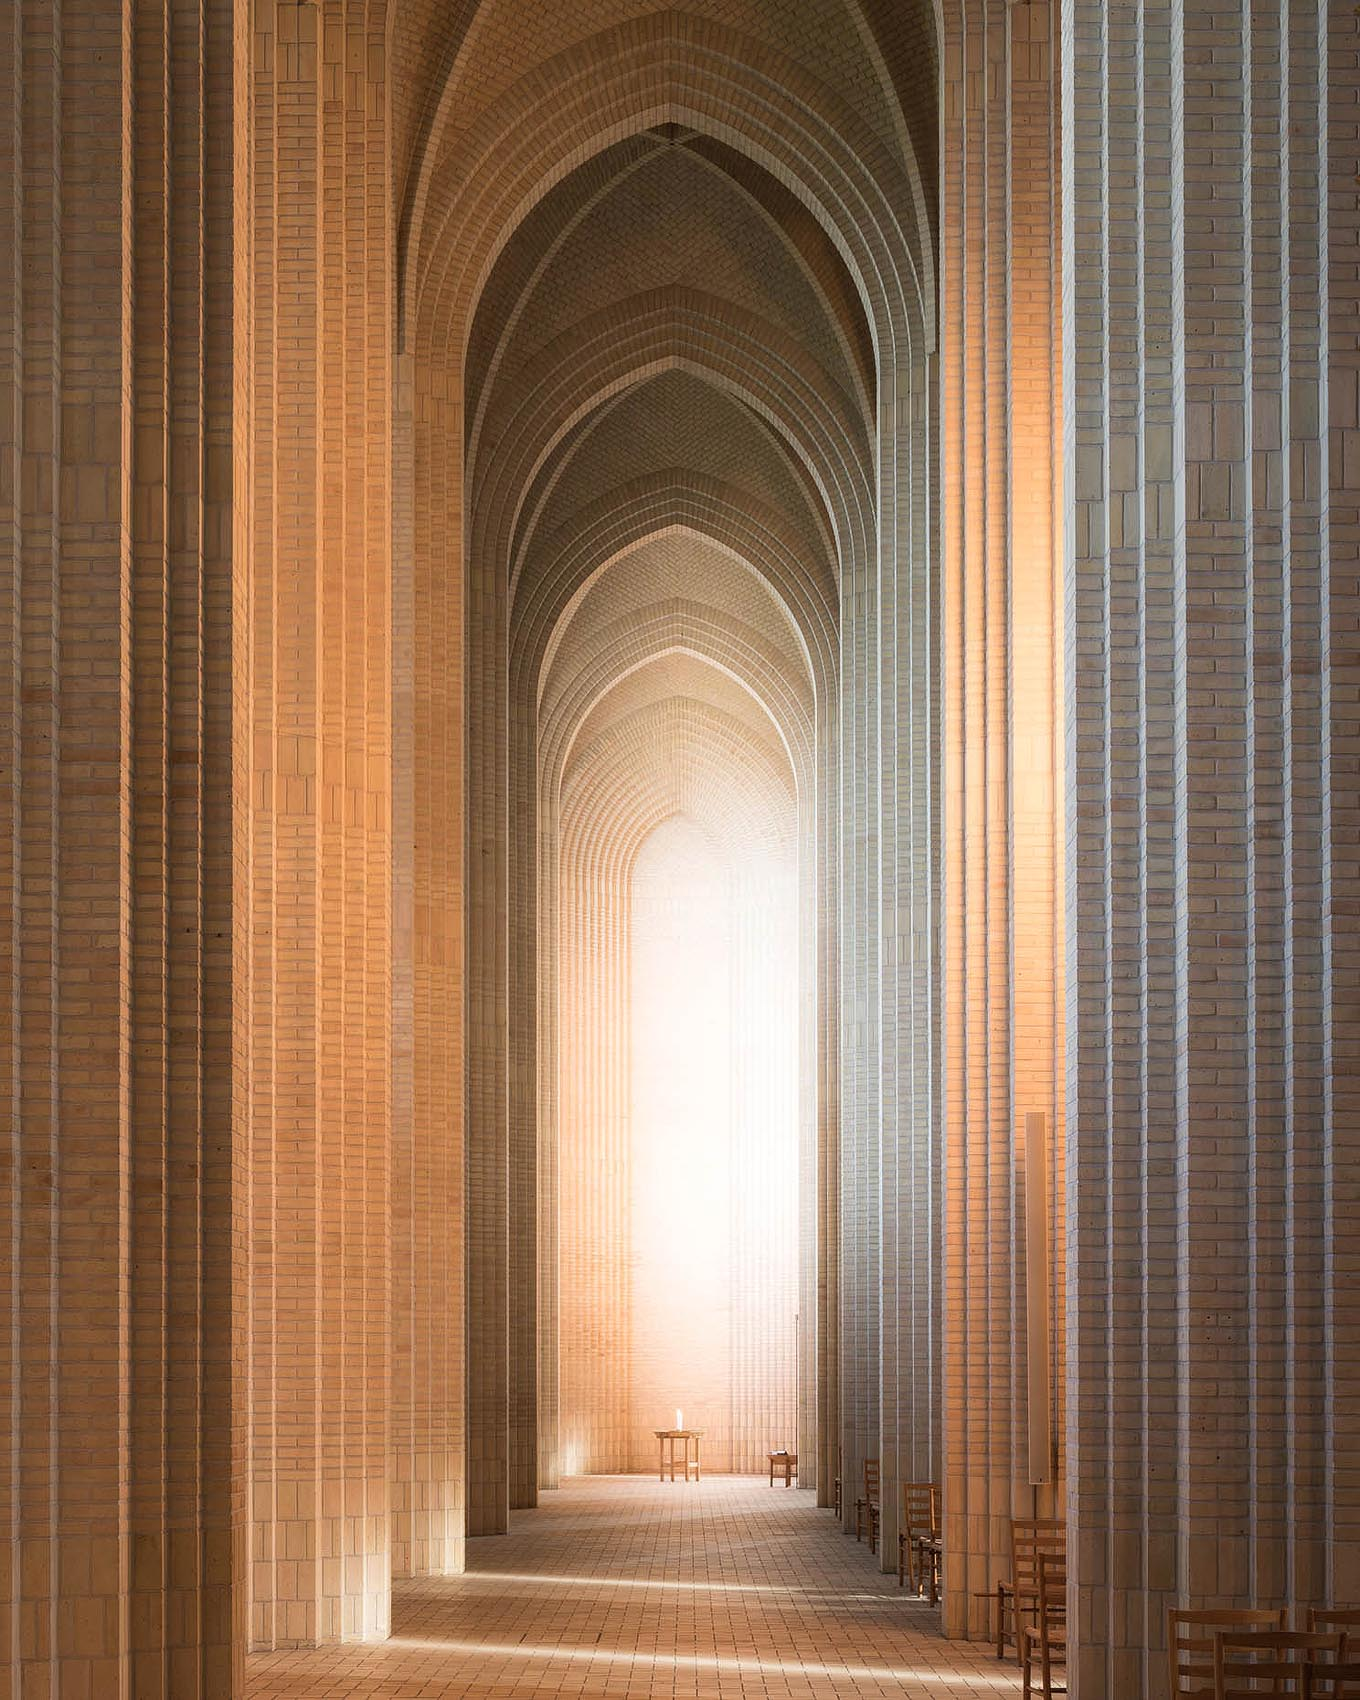 grundvigs-church-architecture-photography-denmark-interior